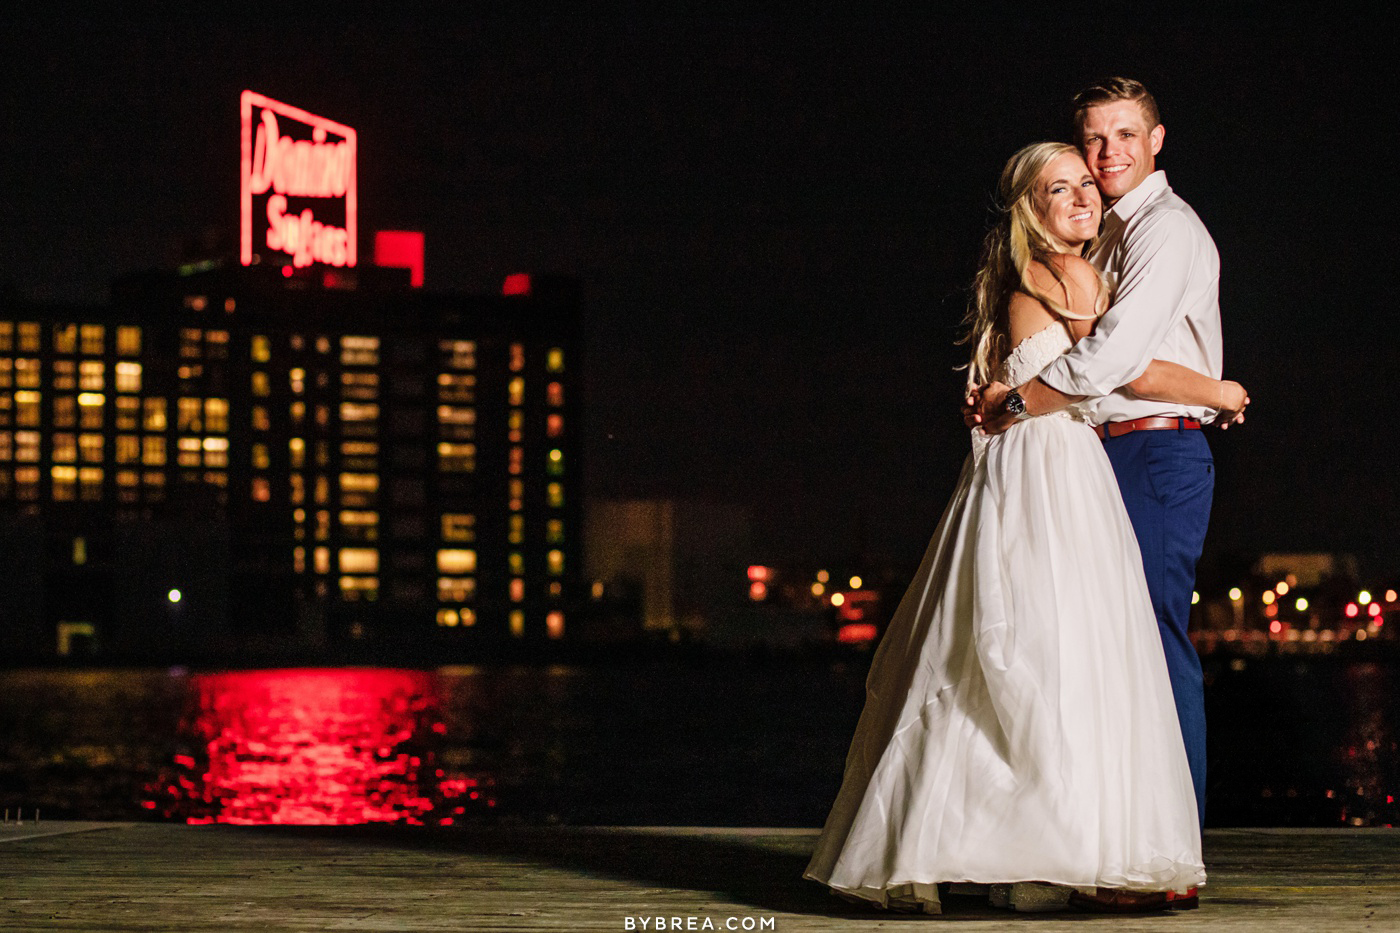 Night time portrait of bride and groom Domino Sugar sign wedding at Fredrick Douglas-Isaac Myers Maritime Museum in Baltimore